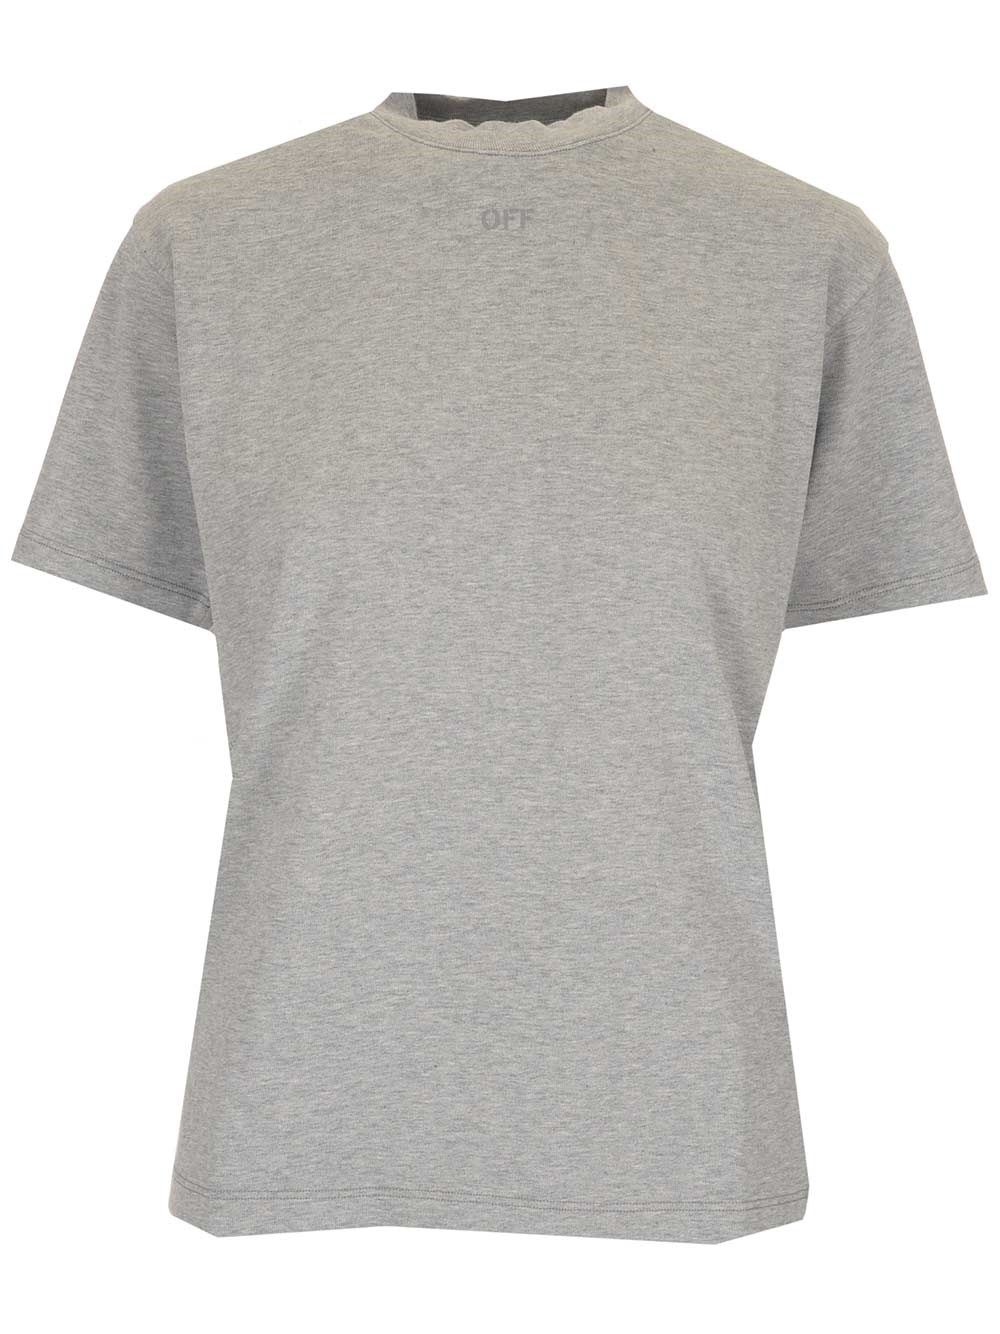 Off-White OFF-WHITE WOMEN'S OWAA049S21JER0010808 GREY OTHER MATERIALS T-SHIRT